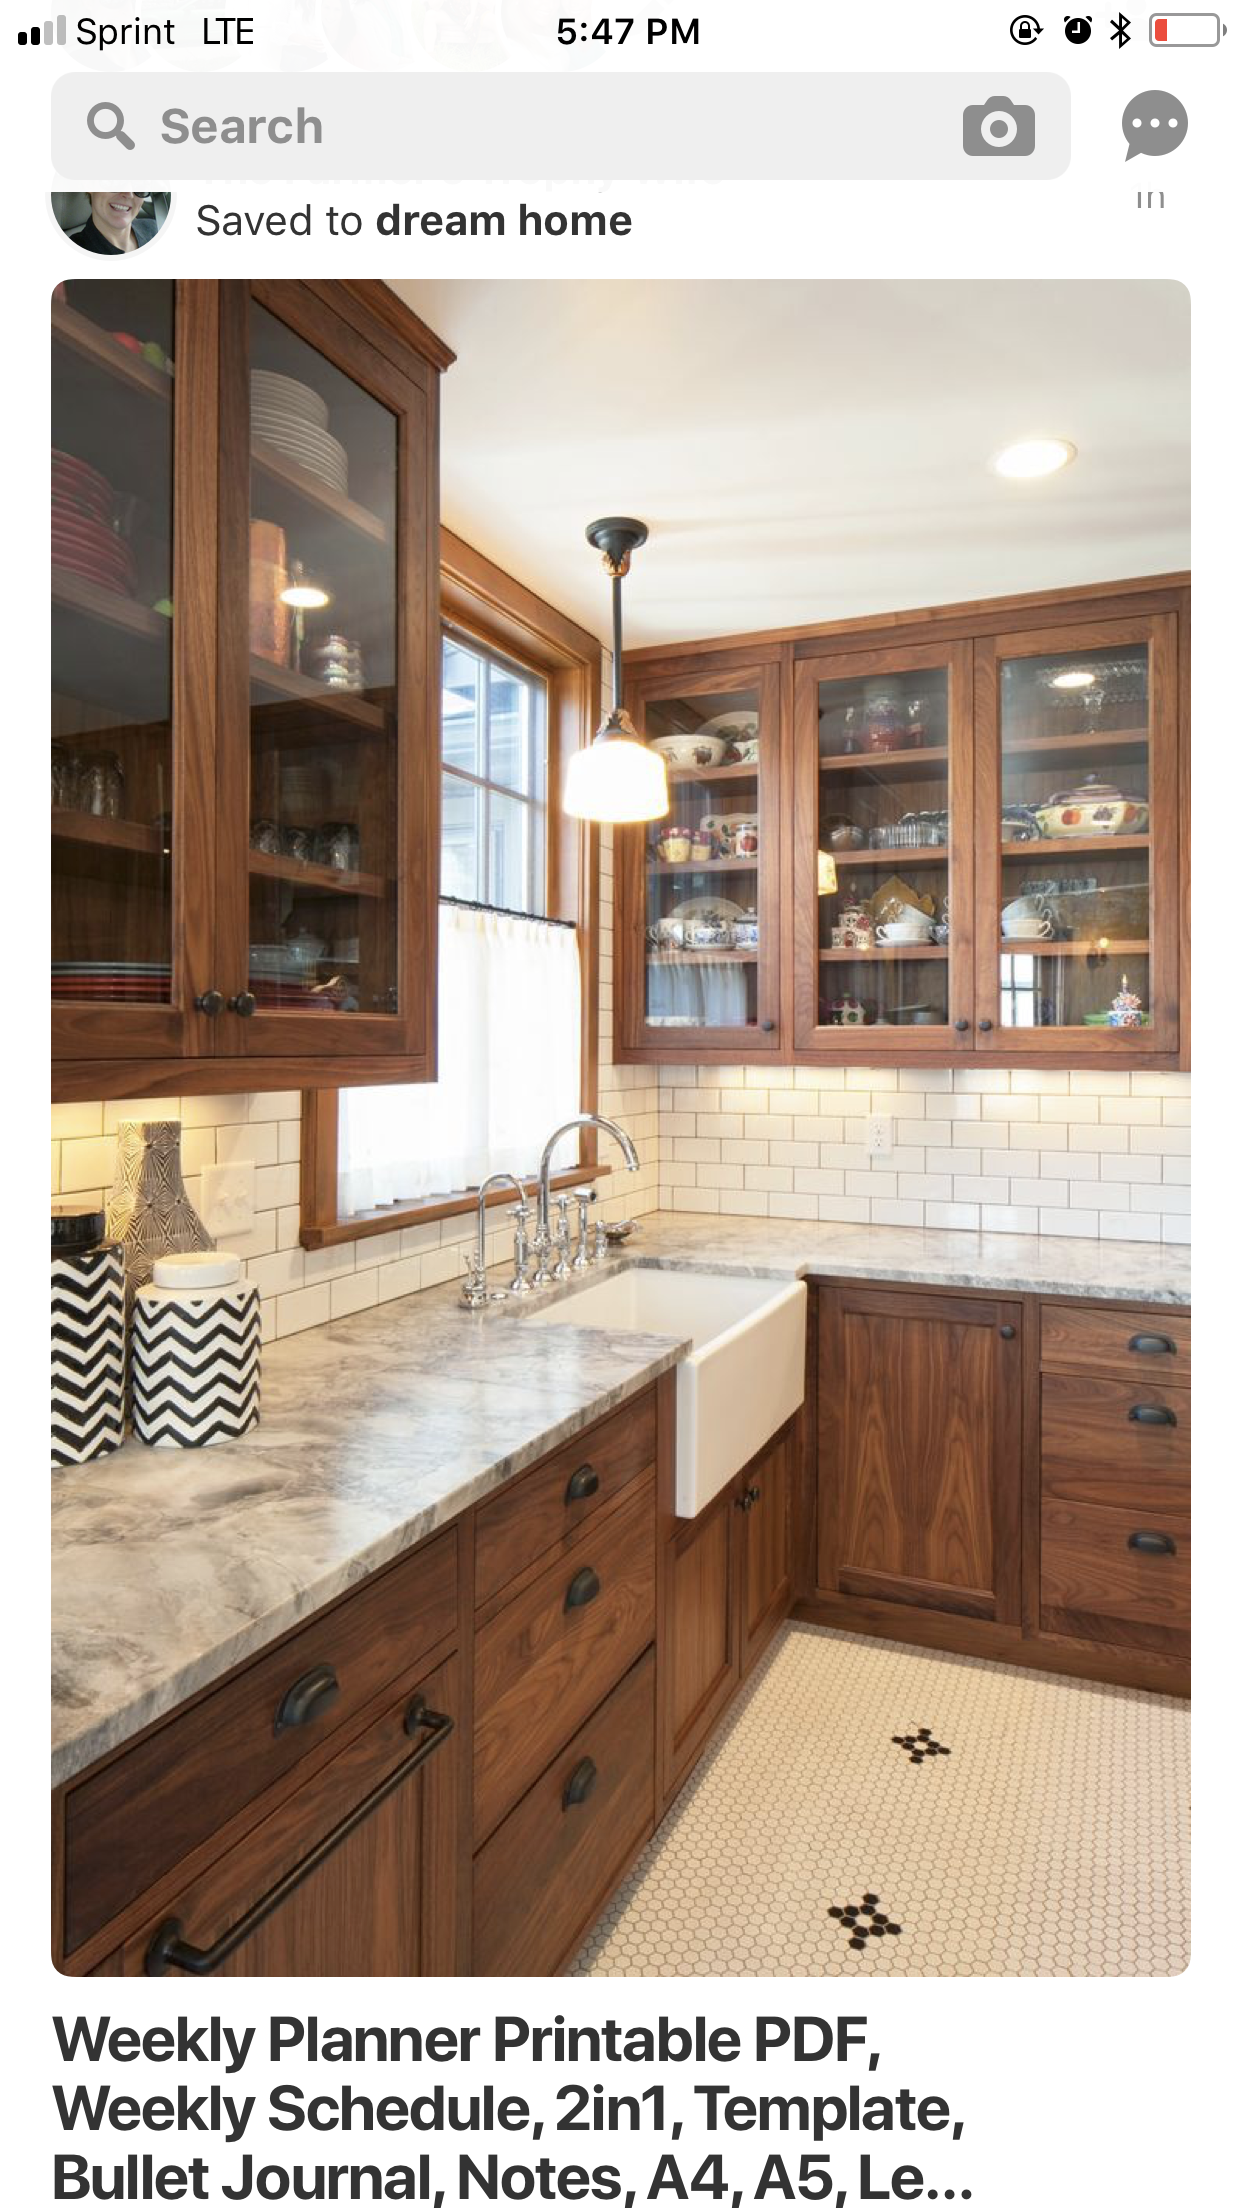 Countertop,gl cabinets, farmhouse sink, bronze faucet, these ... on swimming pool stains, ceiling stains, kitchen with maple cabinets,